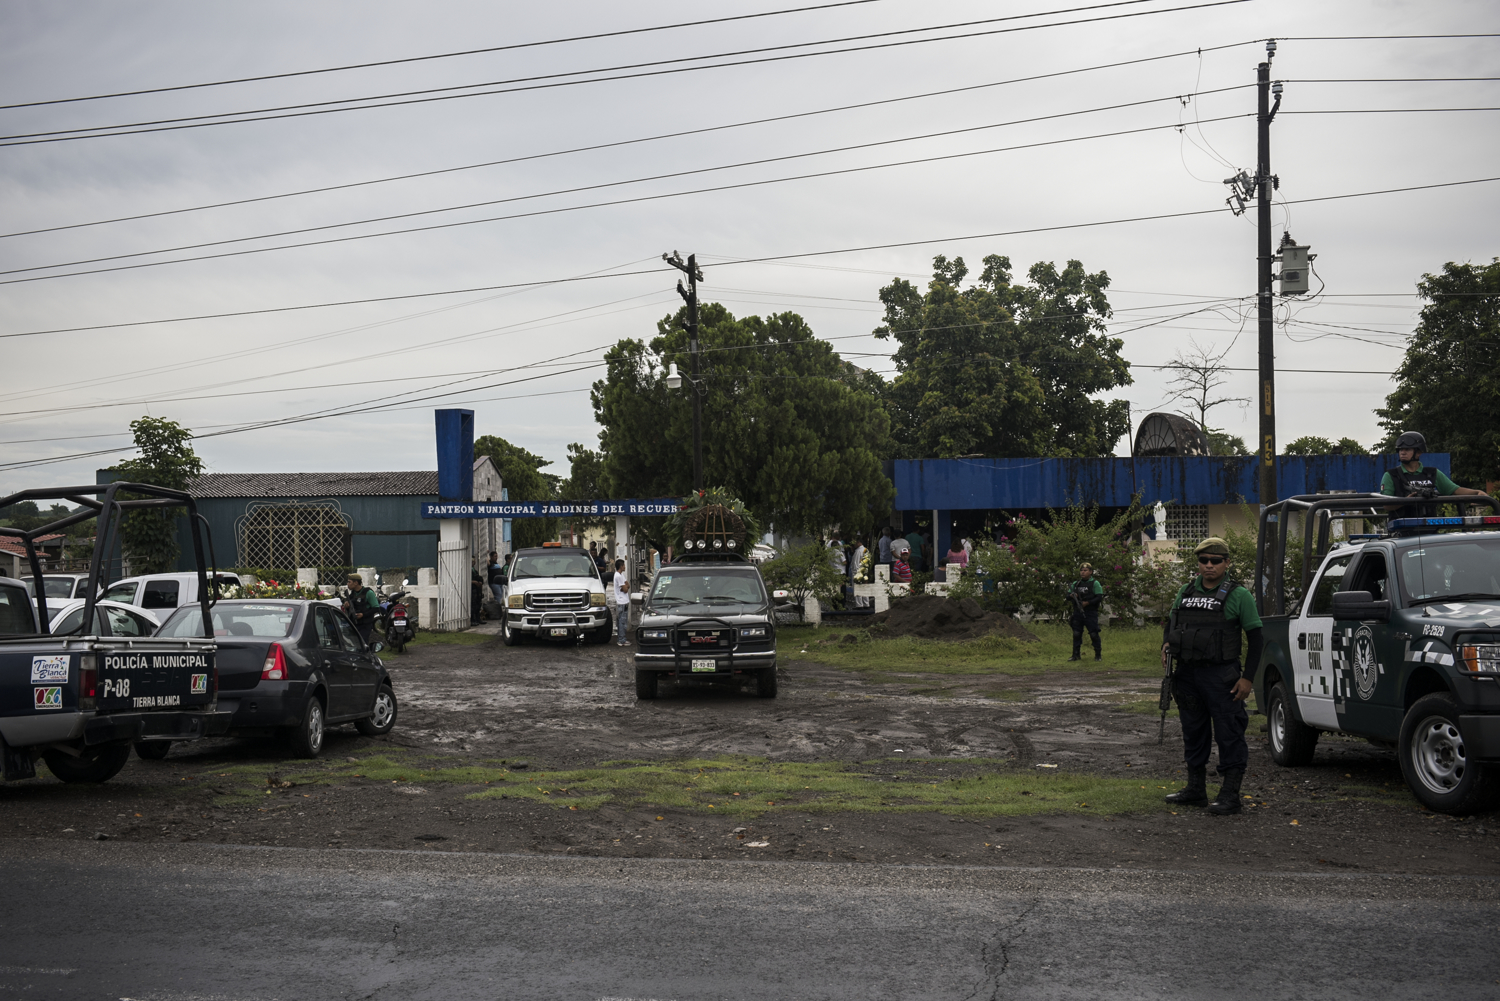 "State police provide security for Pedro Tamayo's funeral in Tierra Blanca, Veracruz on July 22, 2016.   Tamayo was a journalist in Tierra Blanca and was supposed to be under state protection at the time of his murder. But turf battle between Los Zetas and the Nuevo Generación cartels has caused violence in  Veracruz to skyrocket and both organizations have thoroughly infiltrated state and municipal security.   ""It is difficult to tell where organized crime ends and the state begins,"" said one activist."